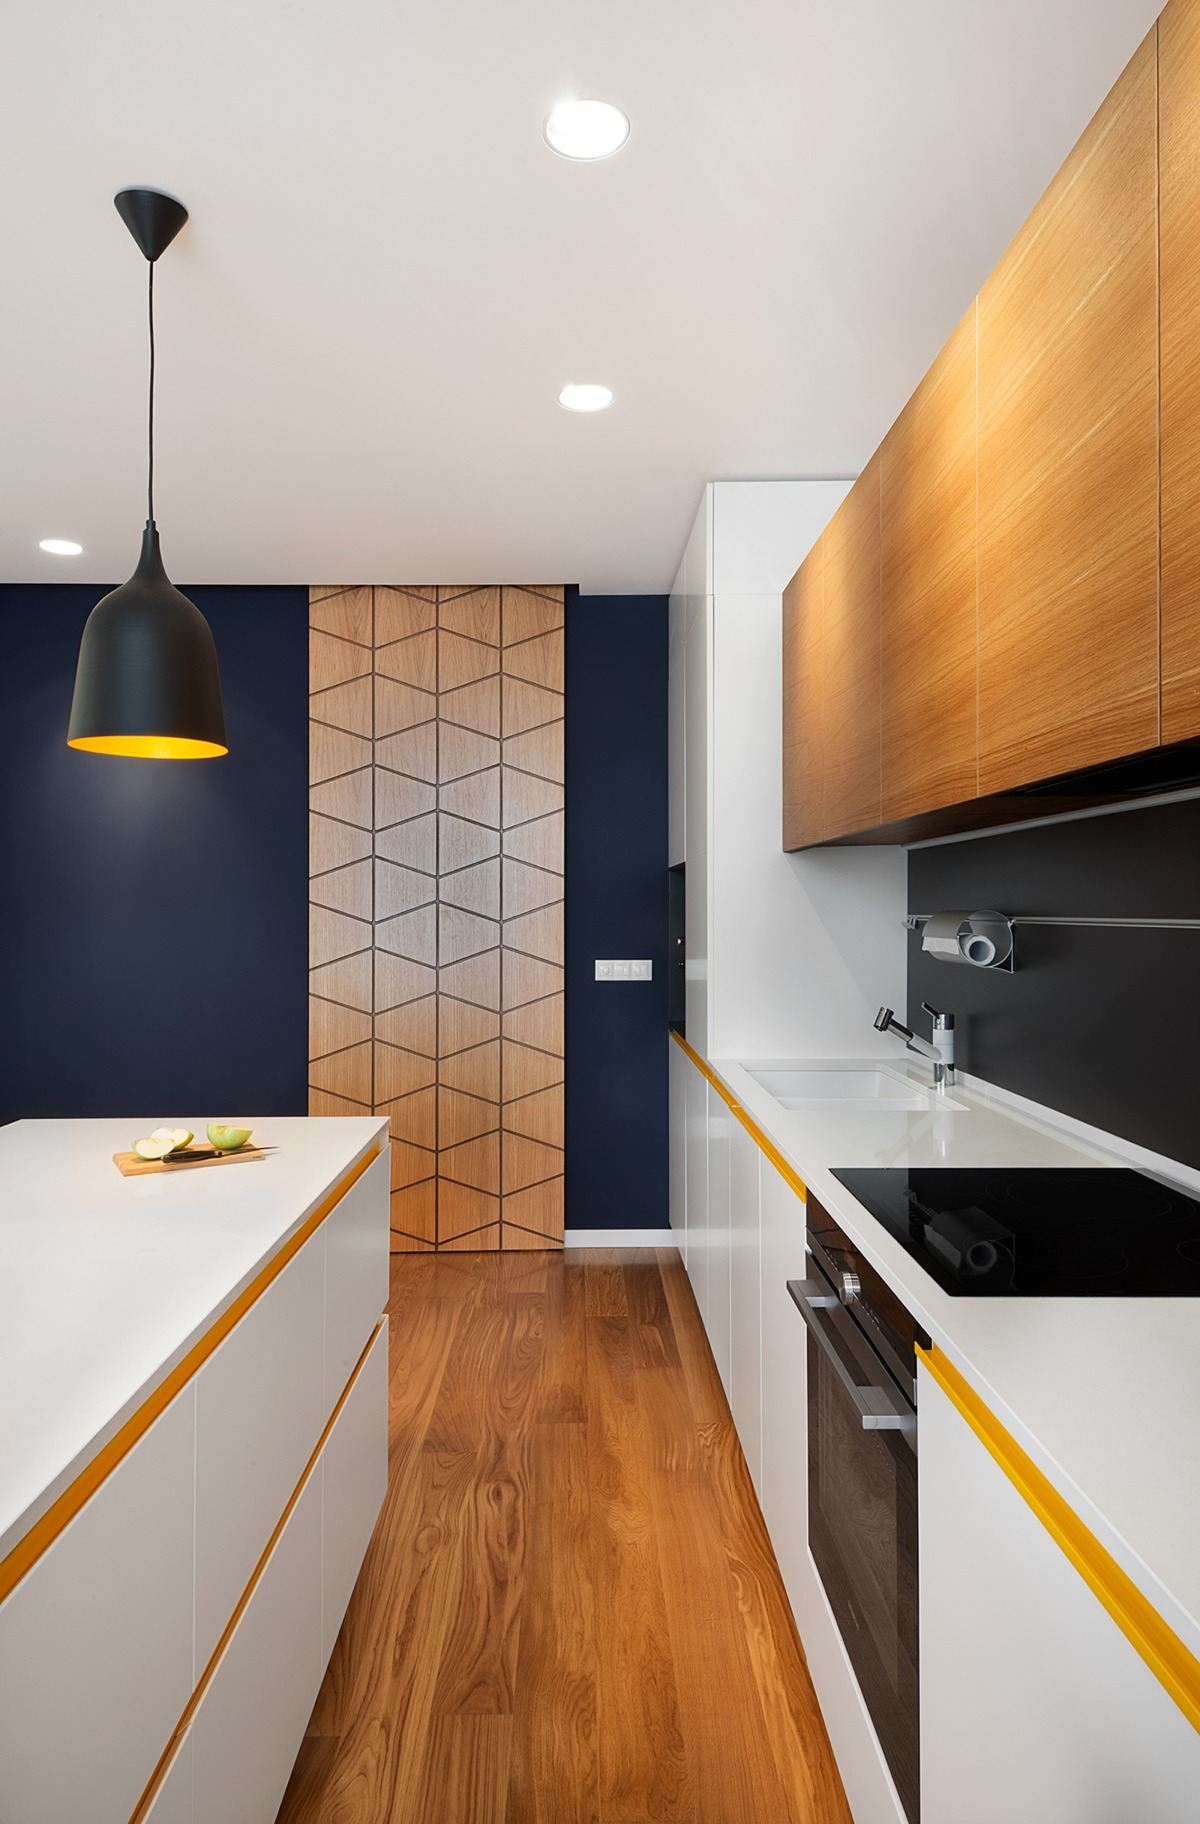 Geometric Door Ideas - A mid century inspired apartment with modern geometric accents